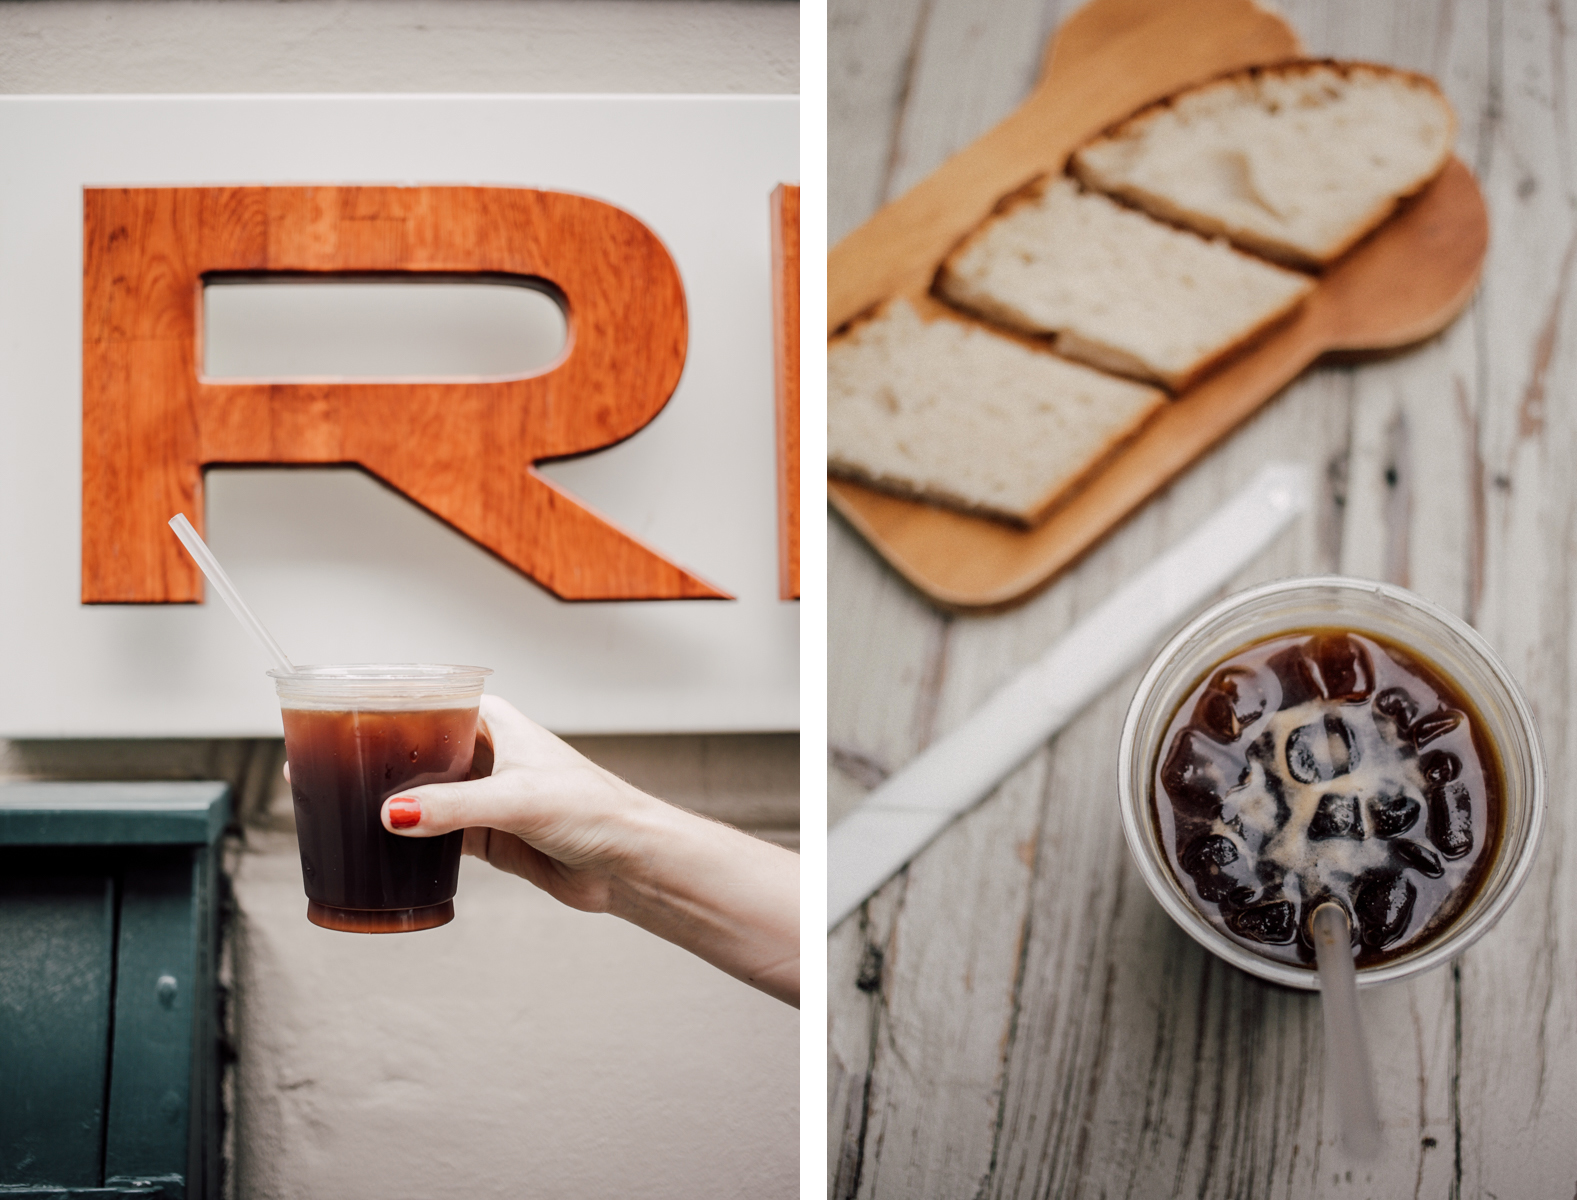 Risteriet Iced Coffee Collage | Scandinavia Standard